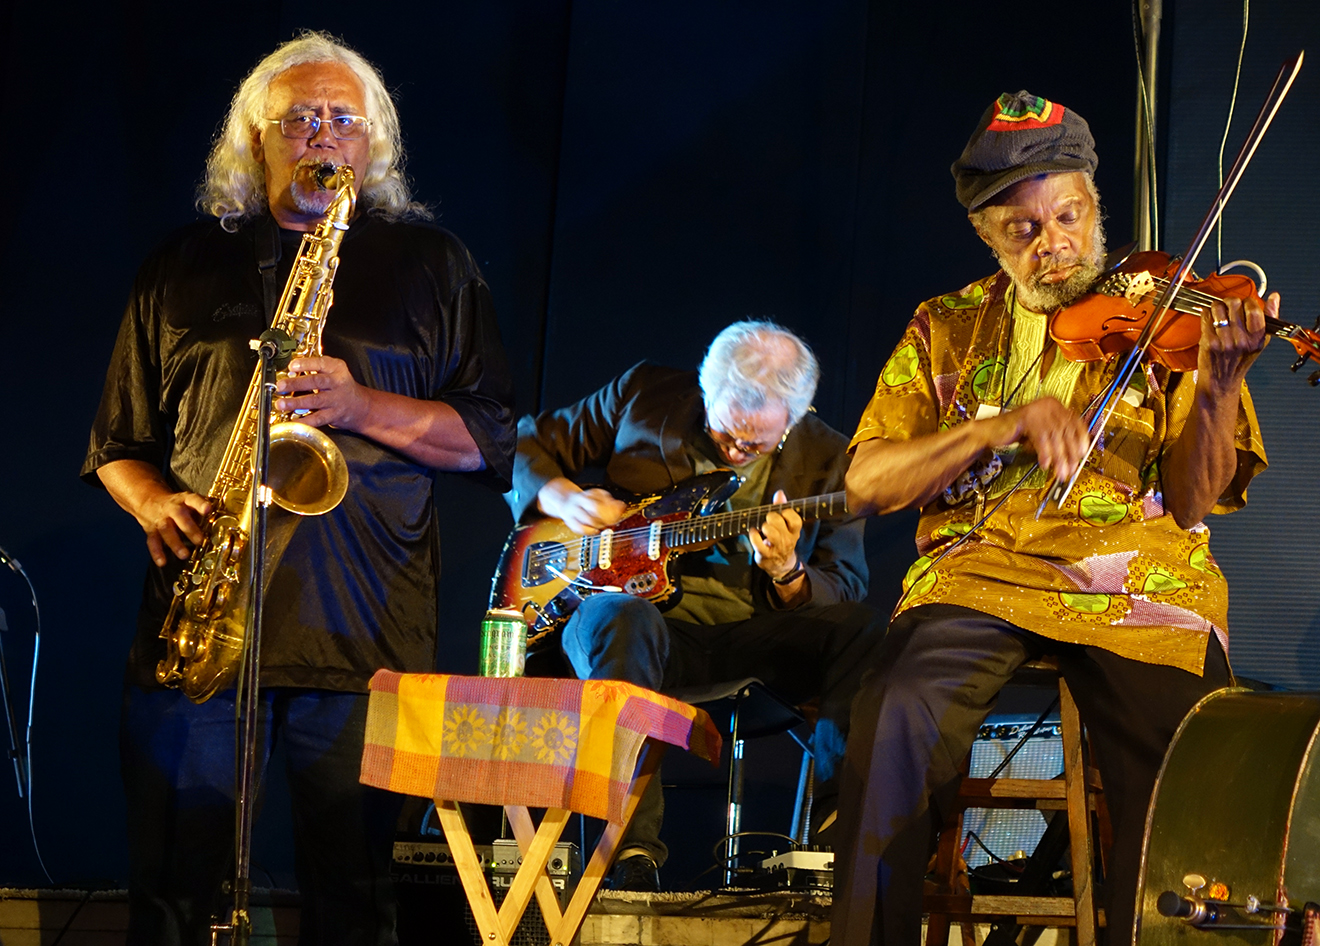 Mixashawn (Lee Rozie), Marc Ribot, & Henry Grimes at Vision Festival 21